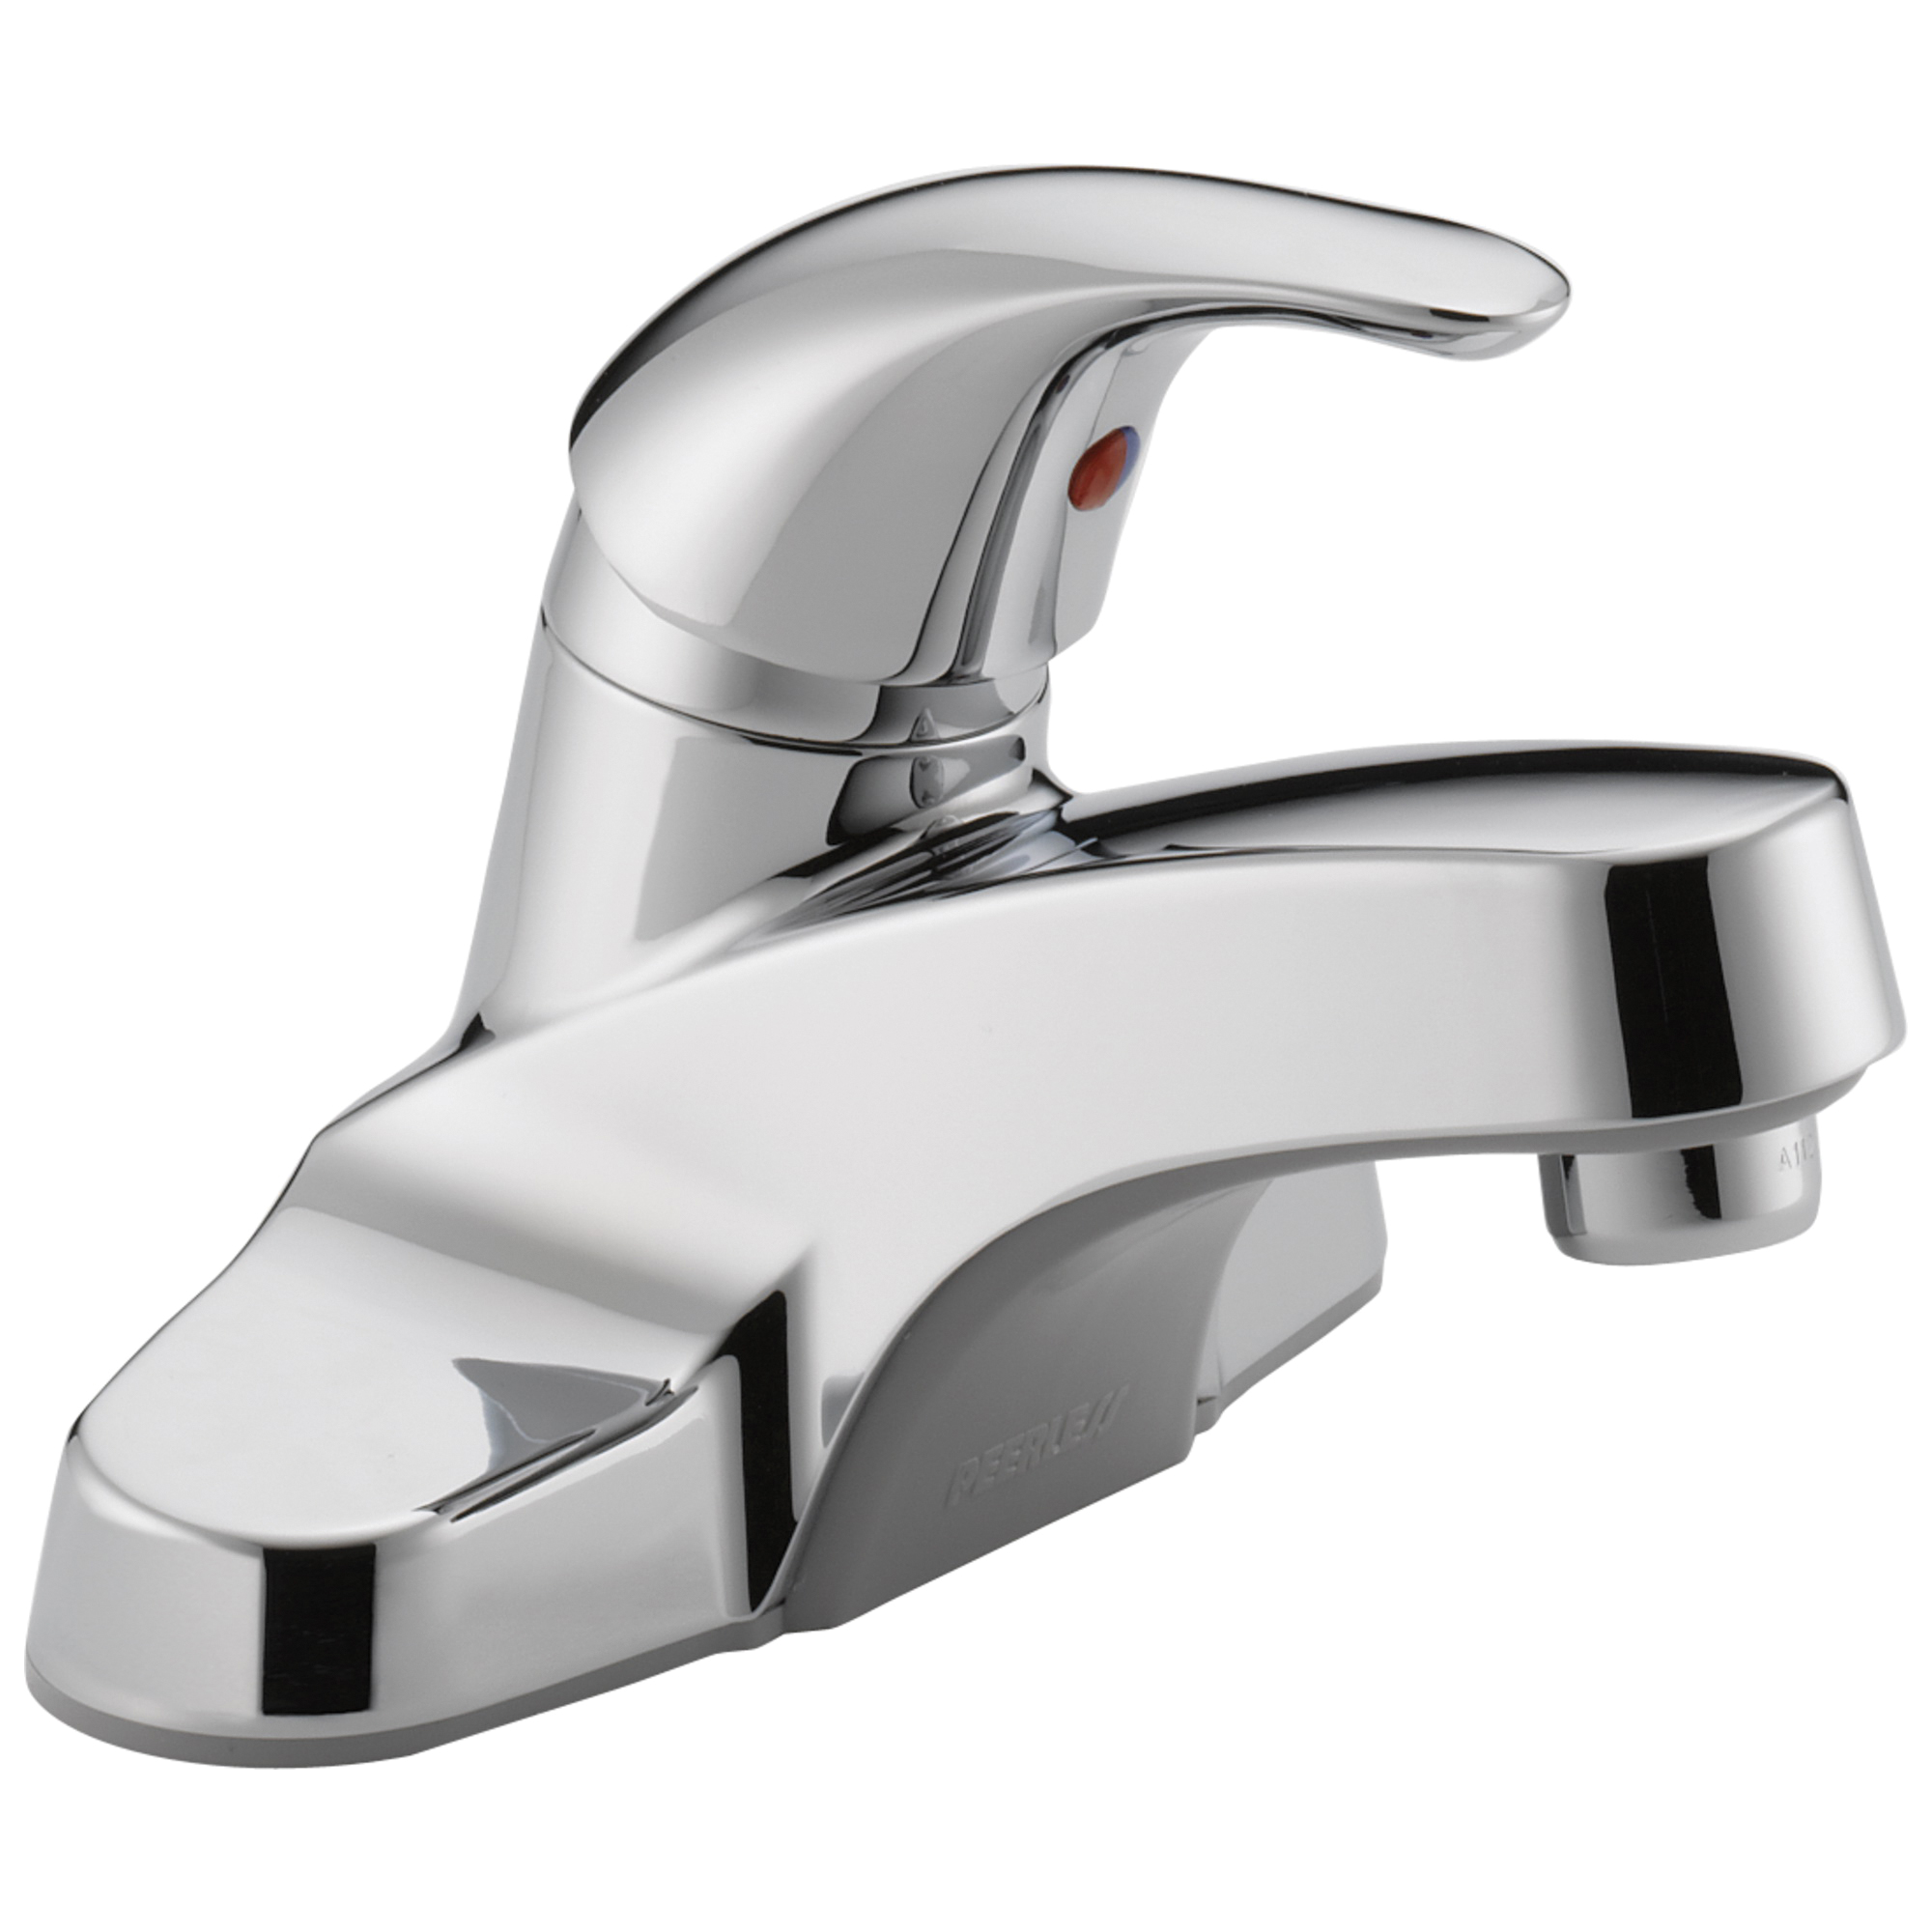 Peerless® P131LF Centerset Lavatory Faucet, Polished Chrome, 1 Handles, 1.2 gpm Flow Rate